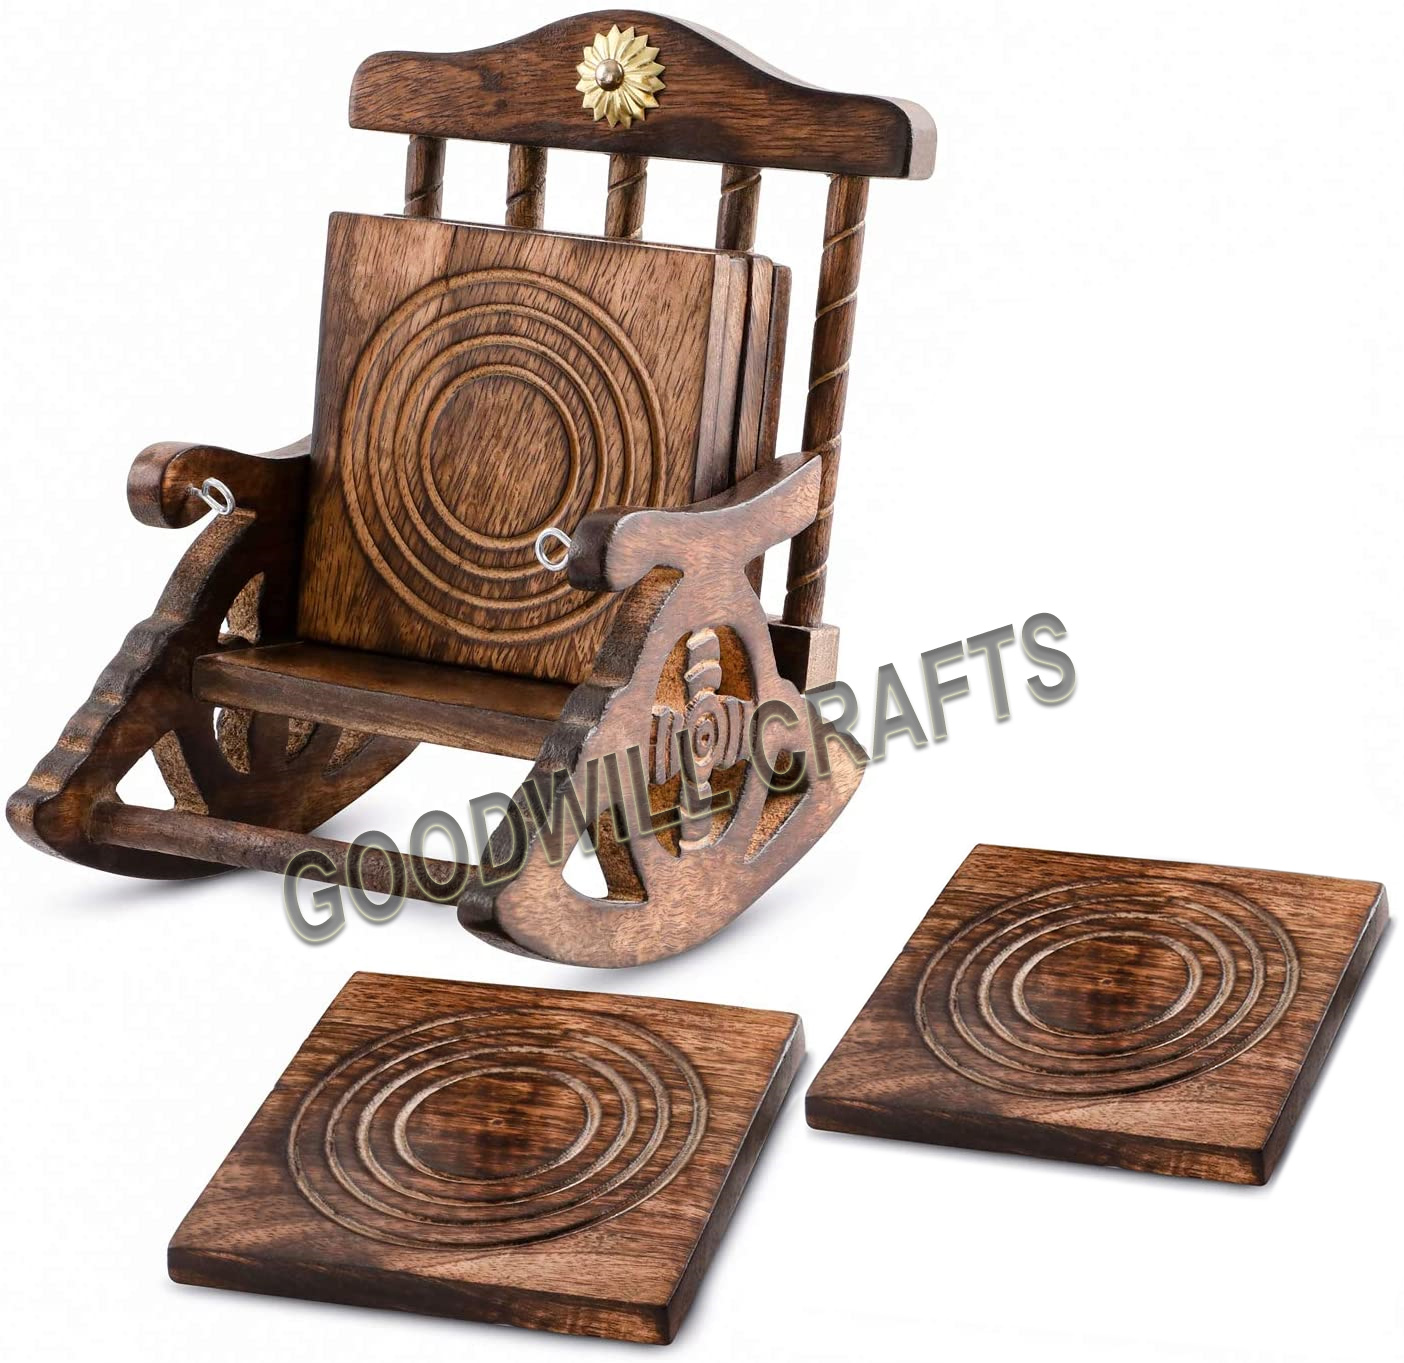 Goodwill Crafts Wooden Chair Coasters Big